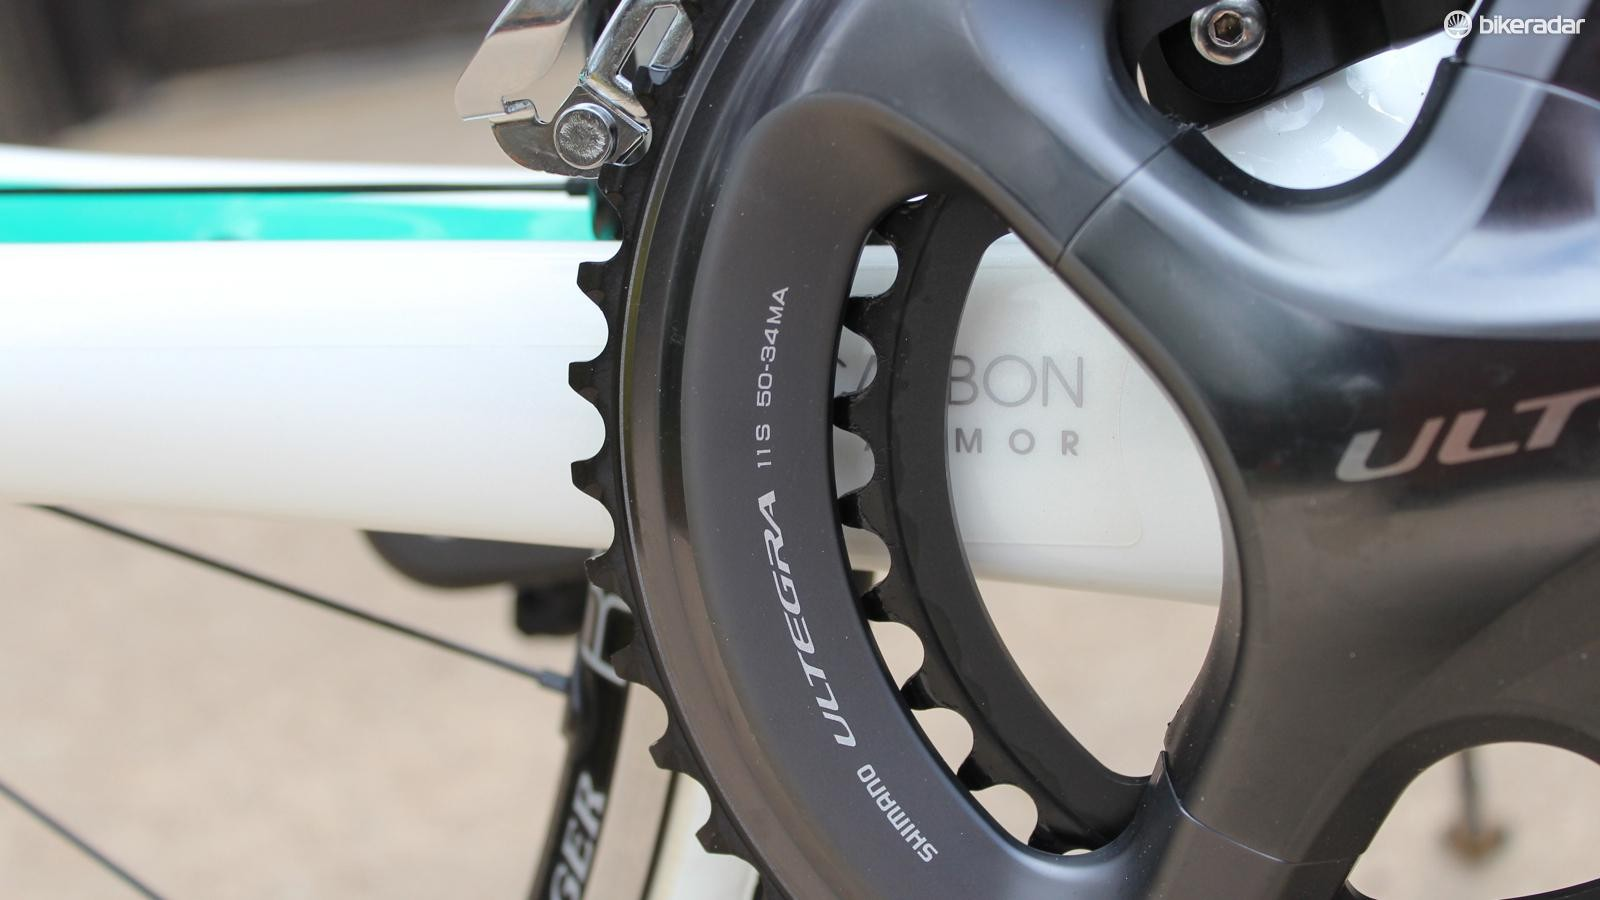 A compact 50/34-tooth Shimano Ultegra crankset comes on the top model